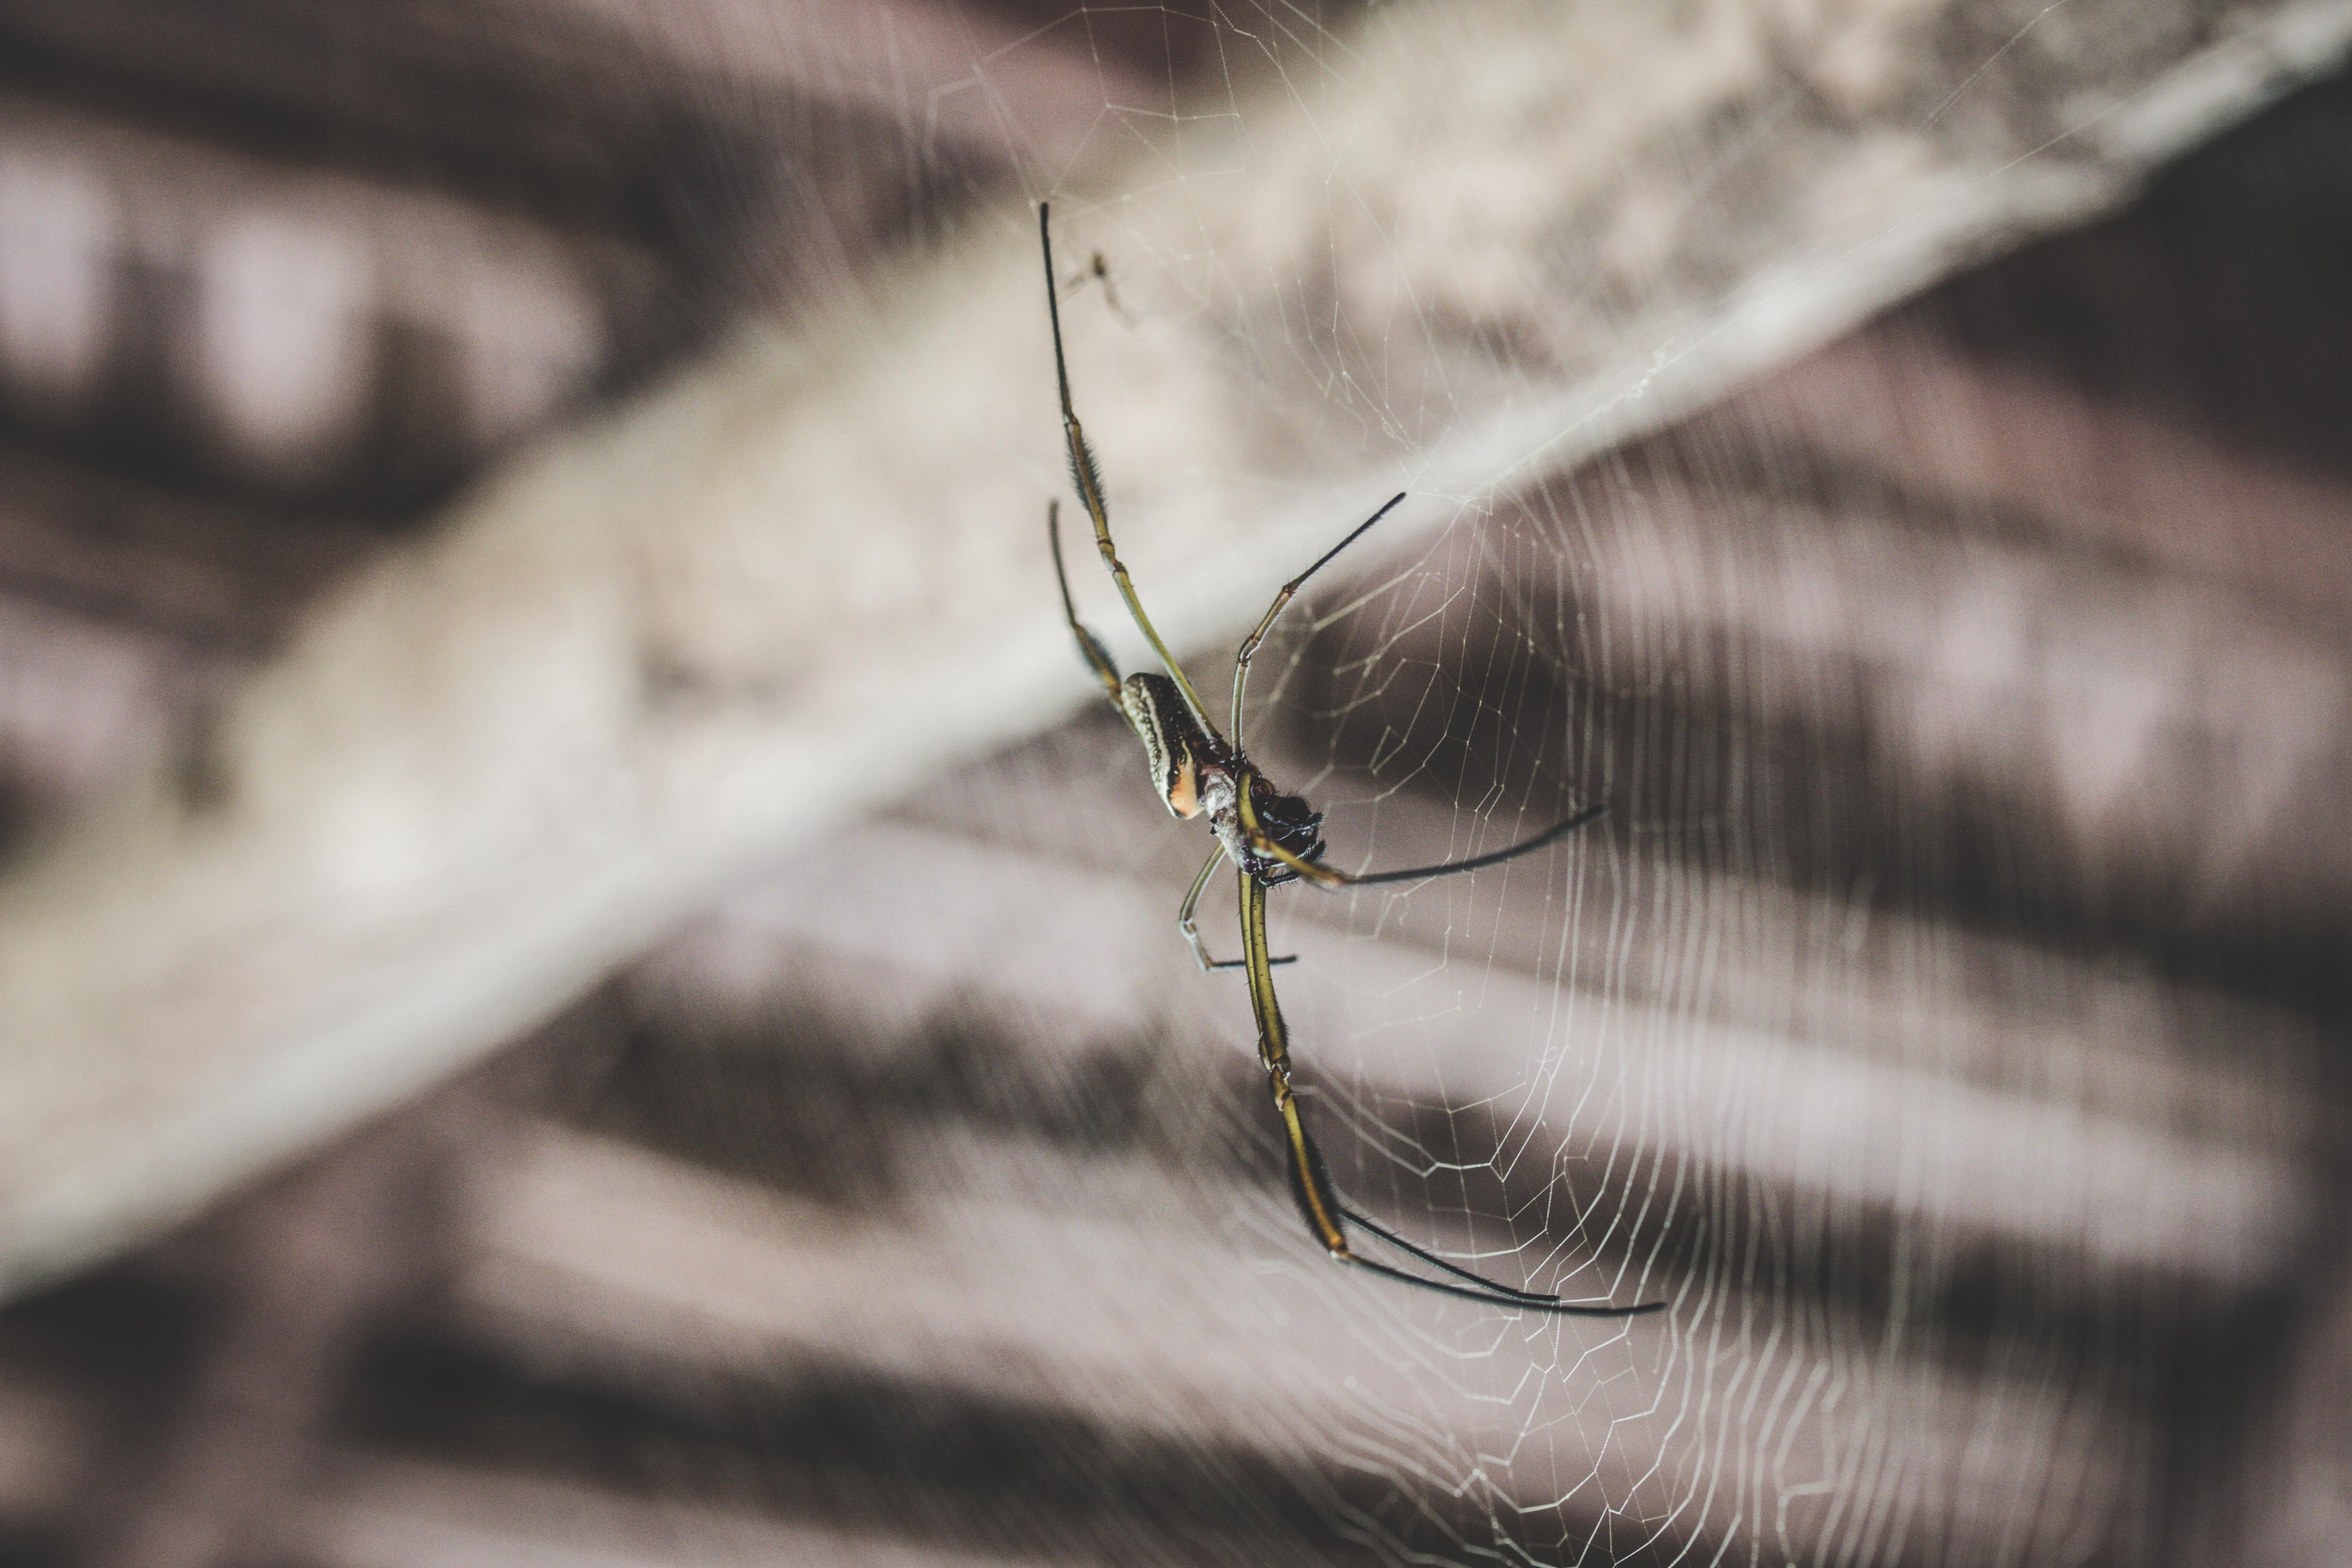 Macro view of a spider on a circular spider web in a wooden building